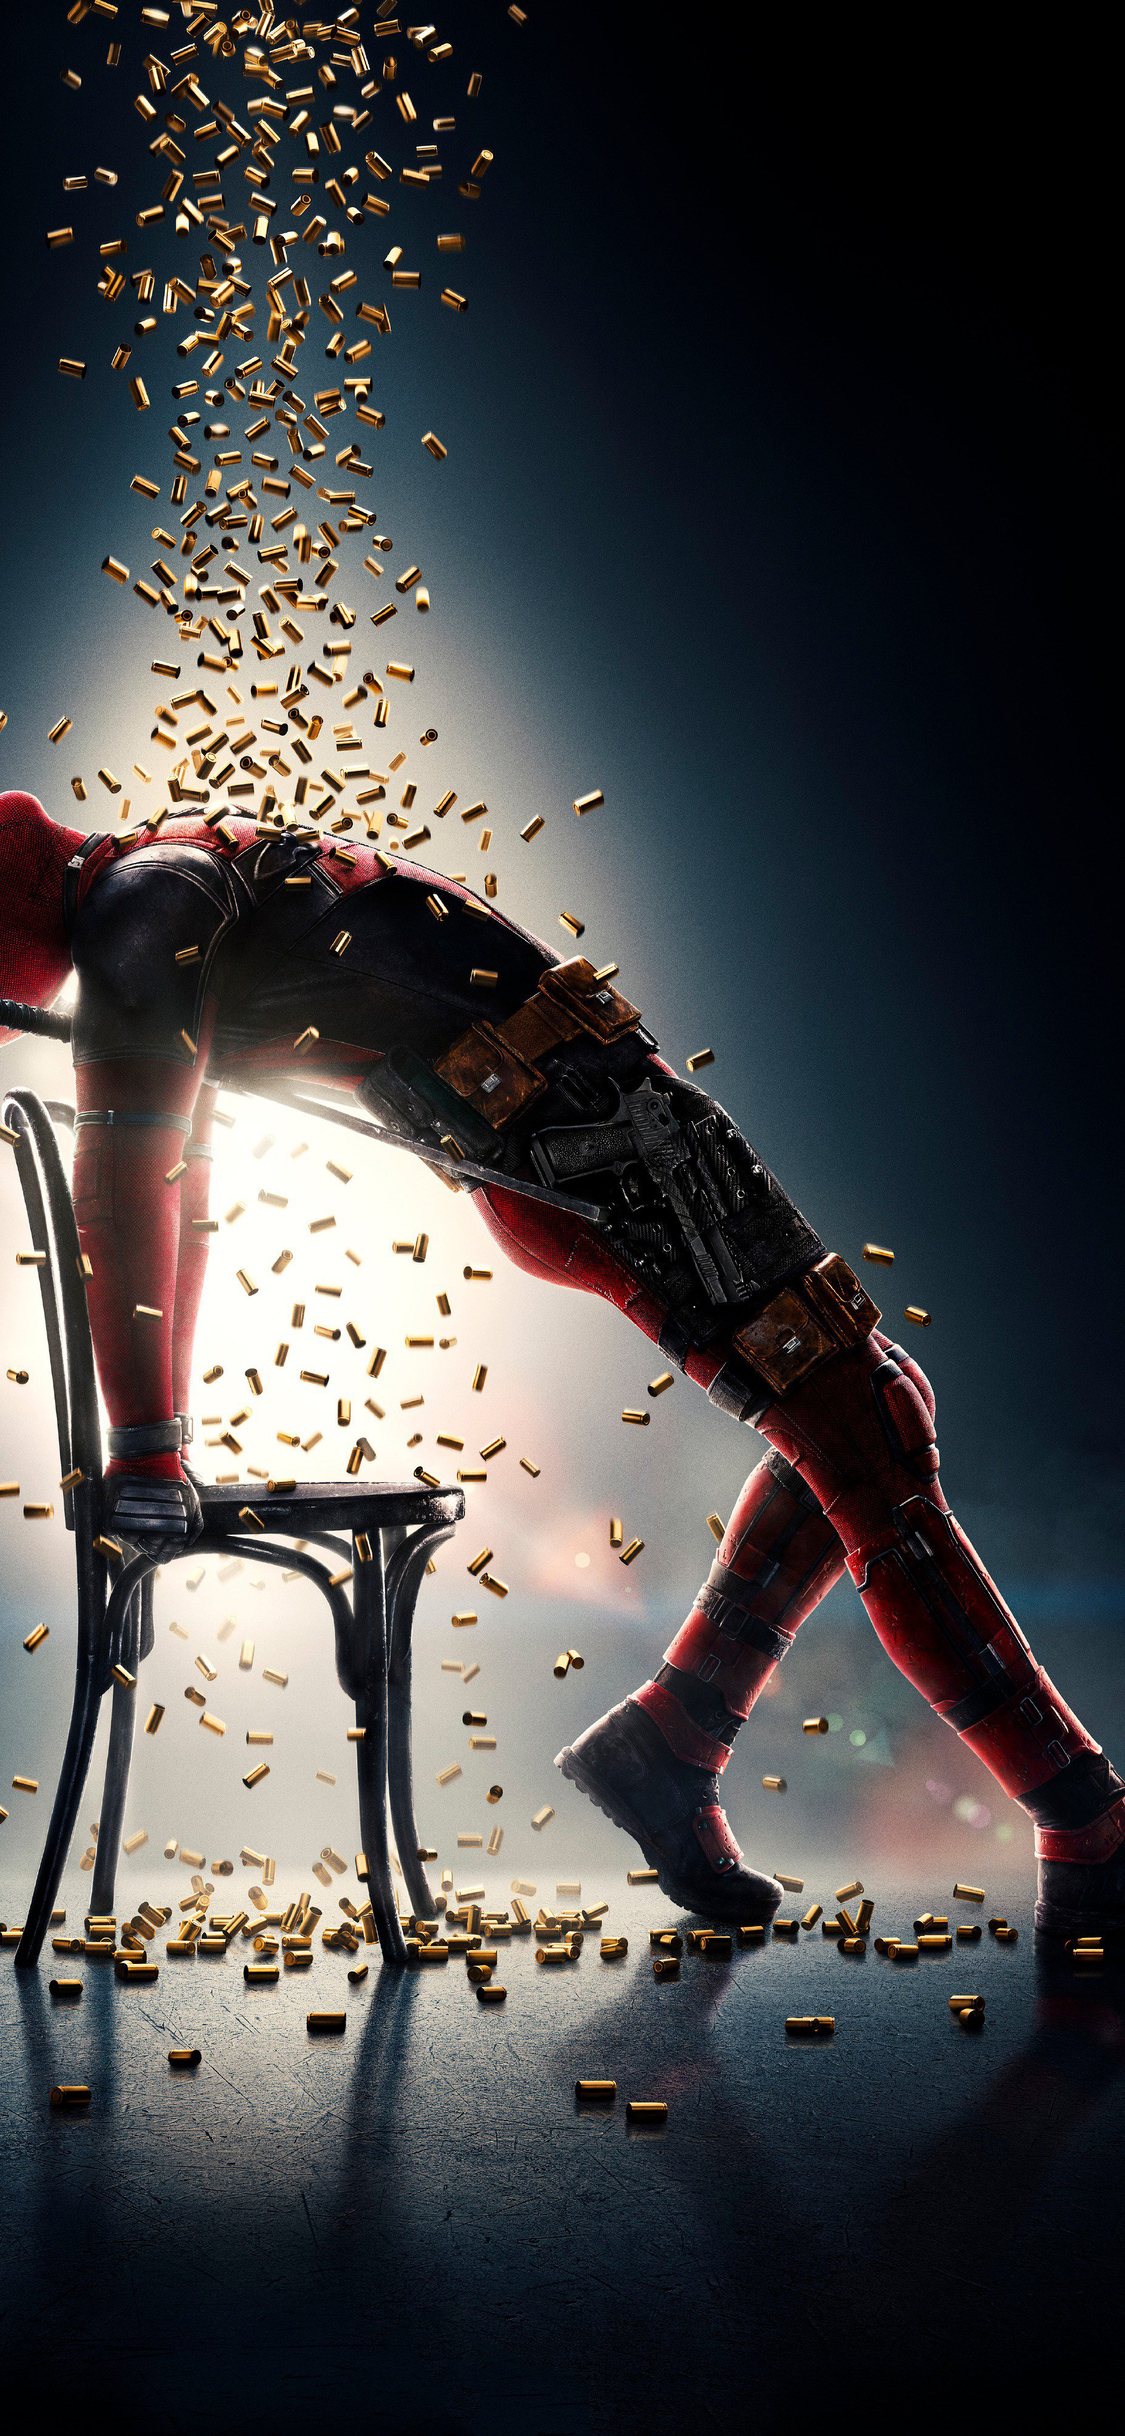 deadpool-2-poster-2018-movie-xt.jpg